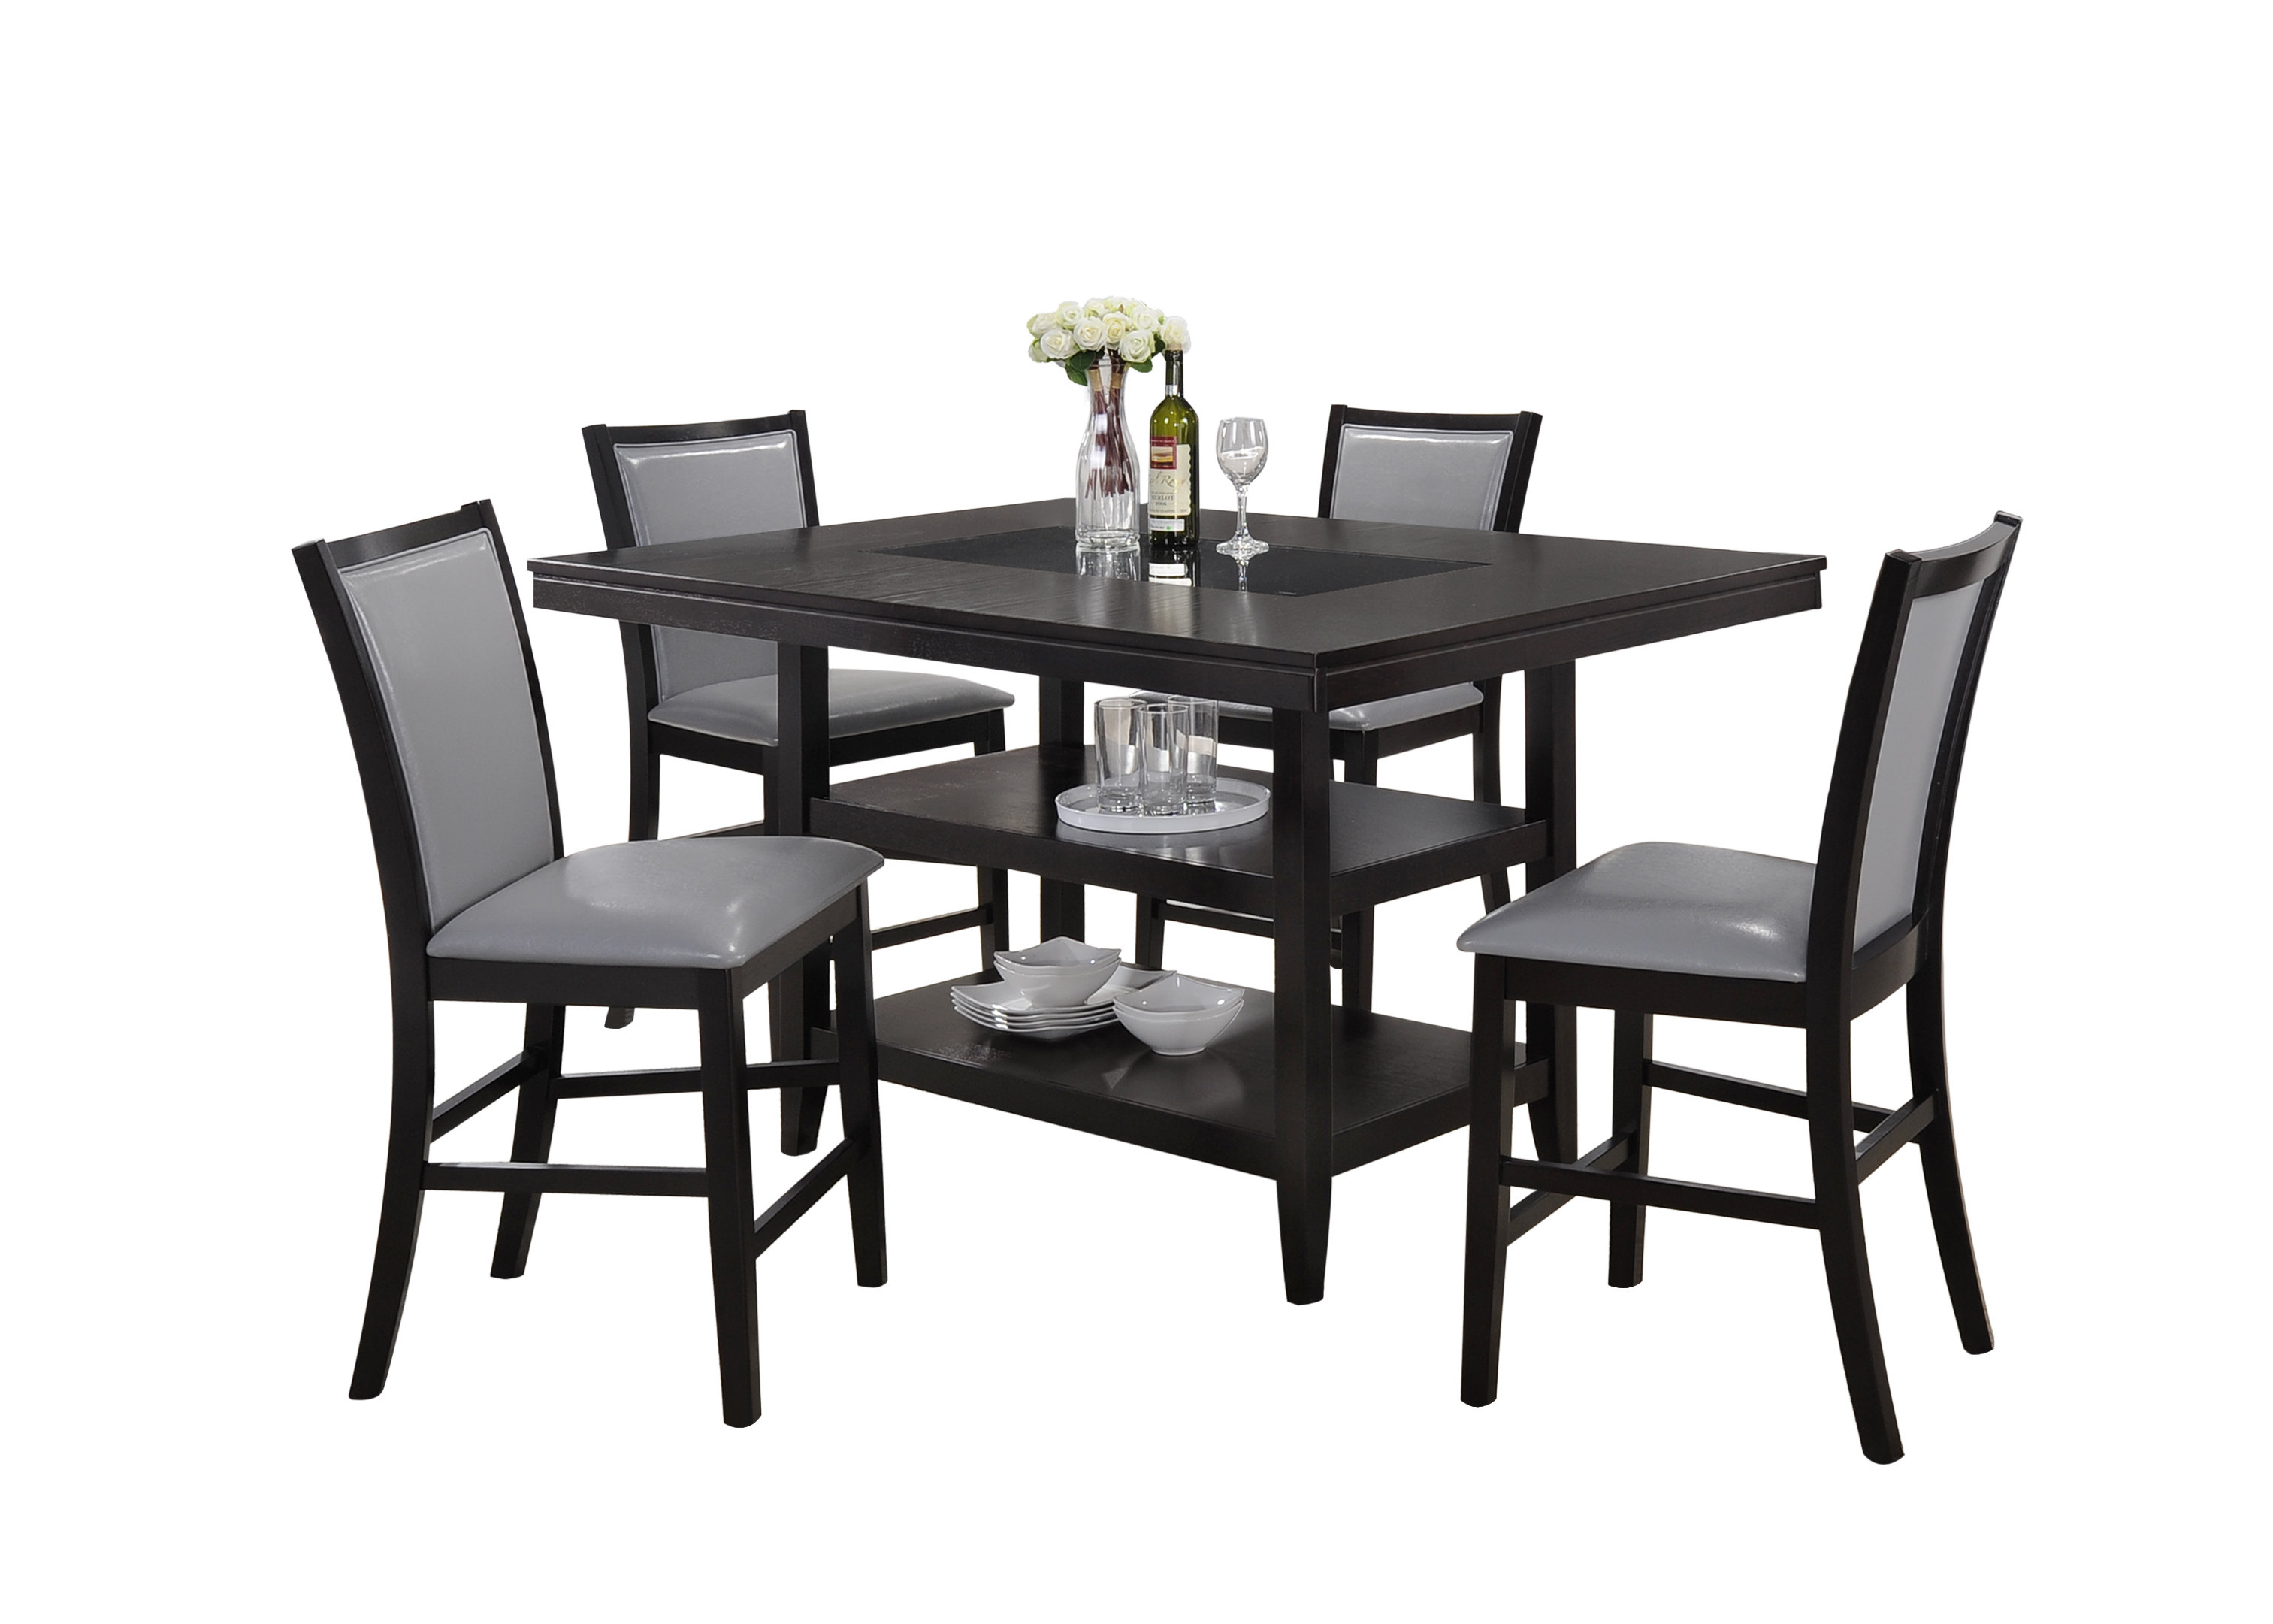 Red Barrel Studio Ashton 5 Piece Dining Set Intended For Most Current Bryson 5 Piece Dining Sets (Image 19 of 20)